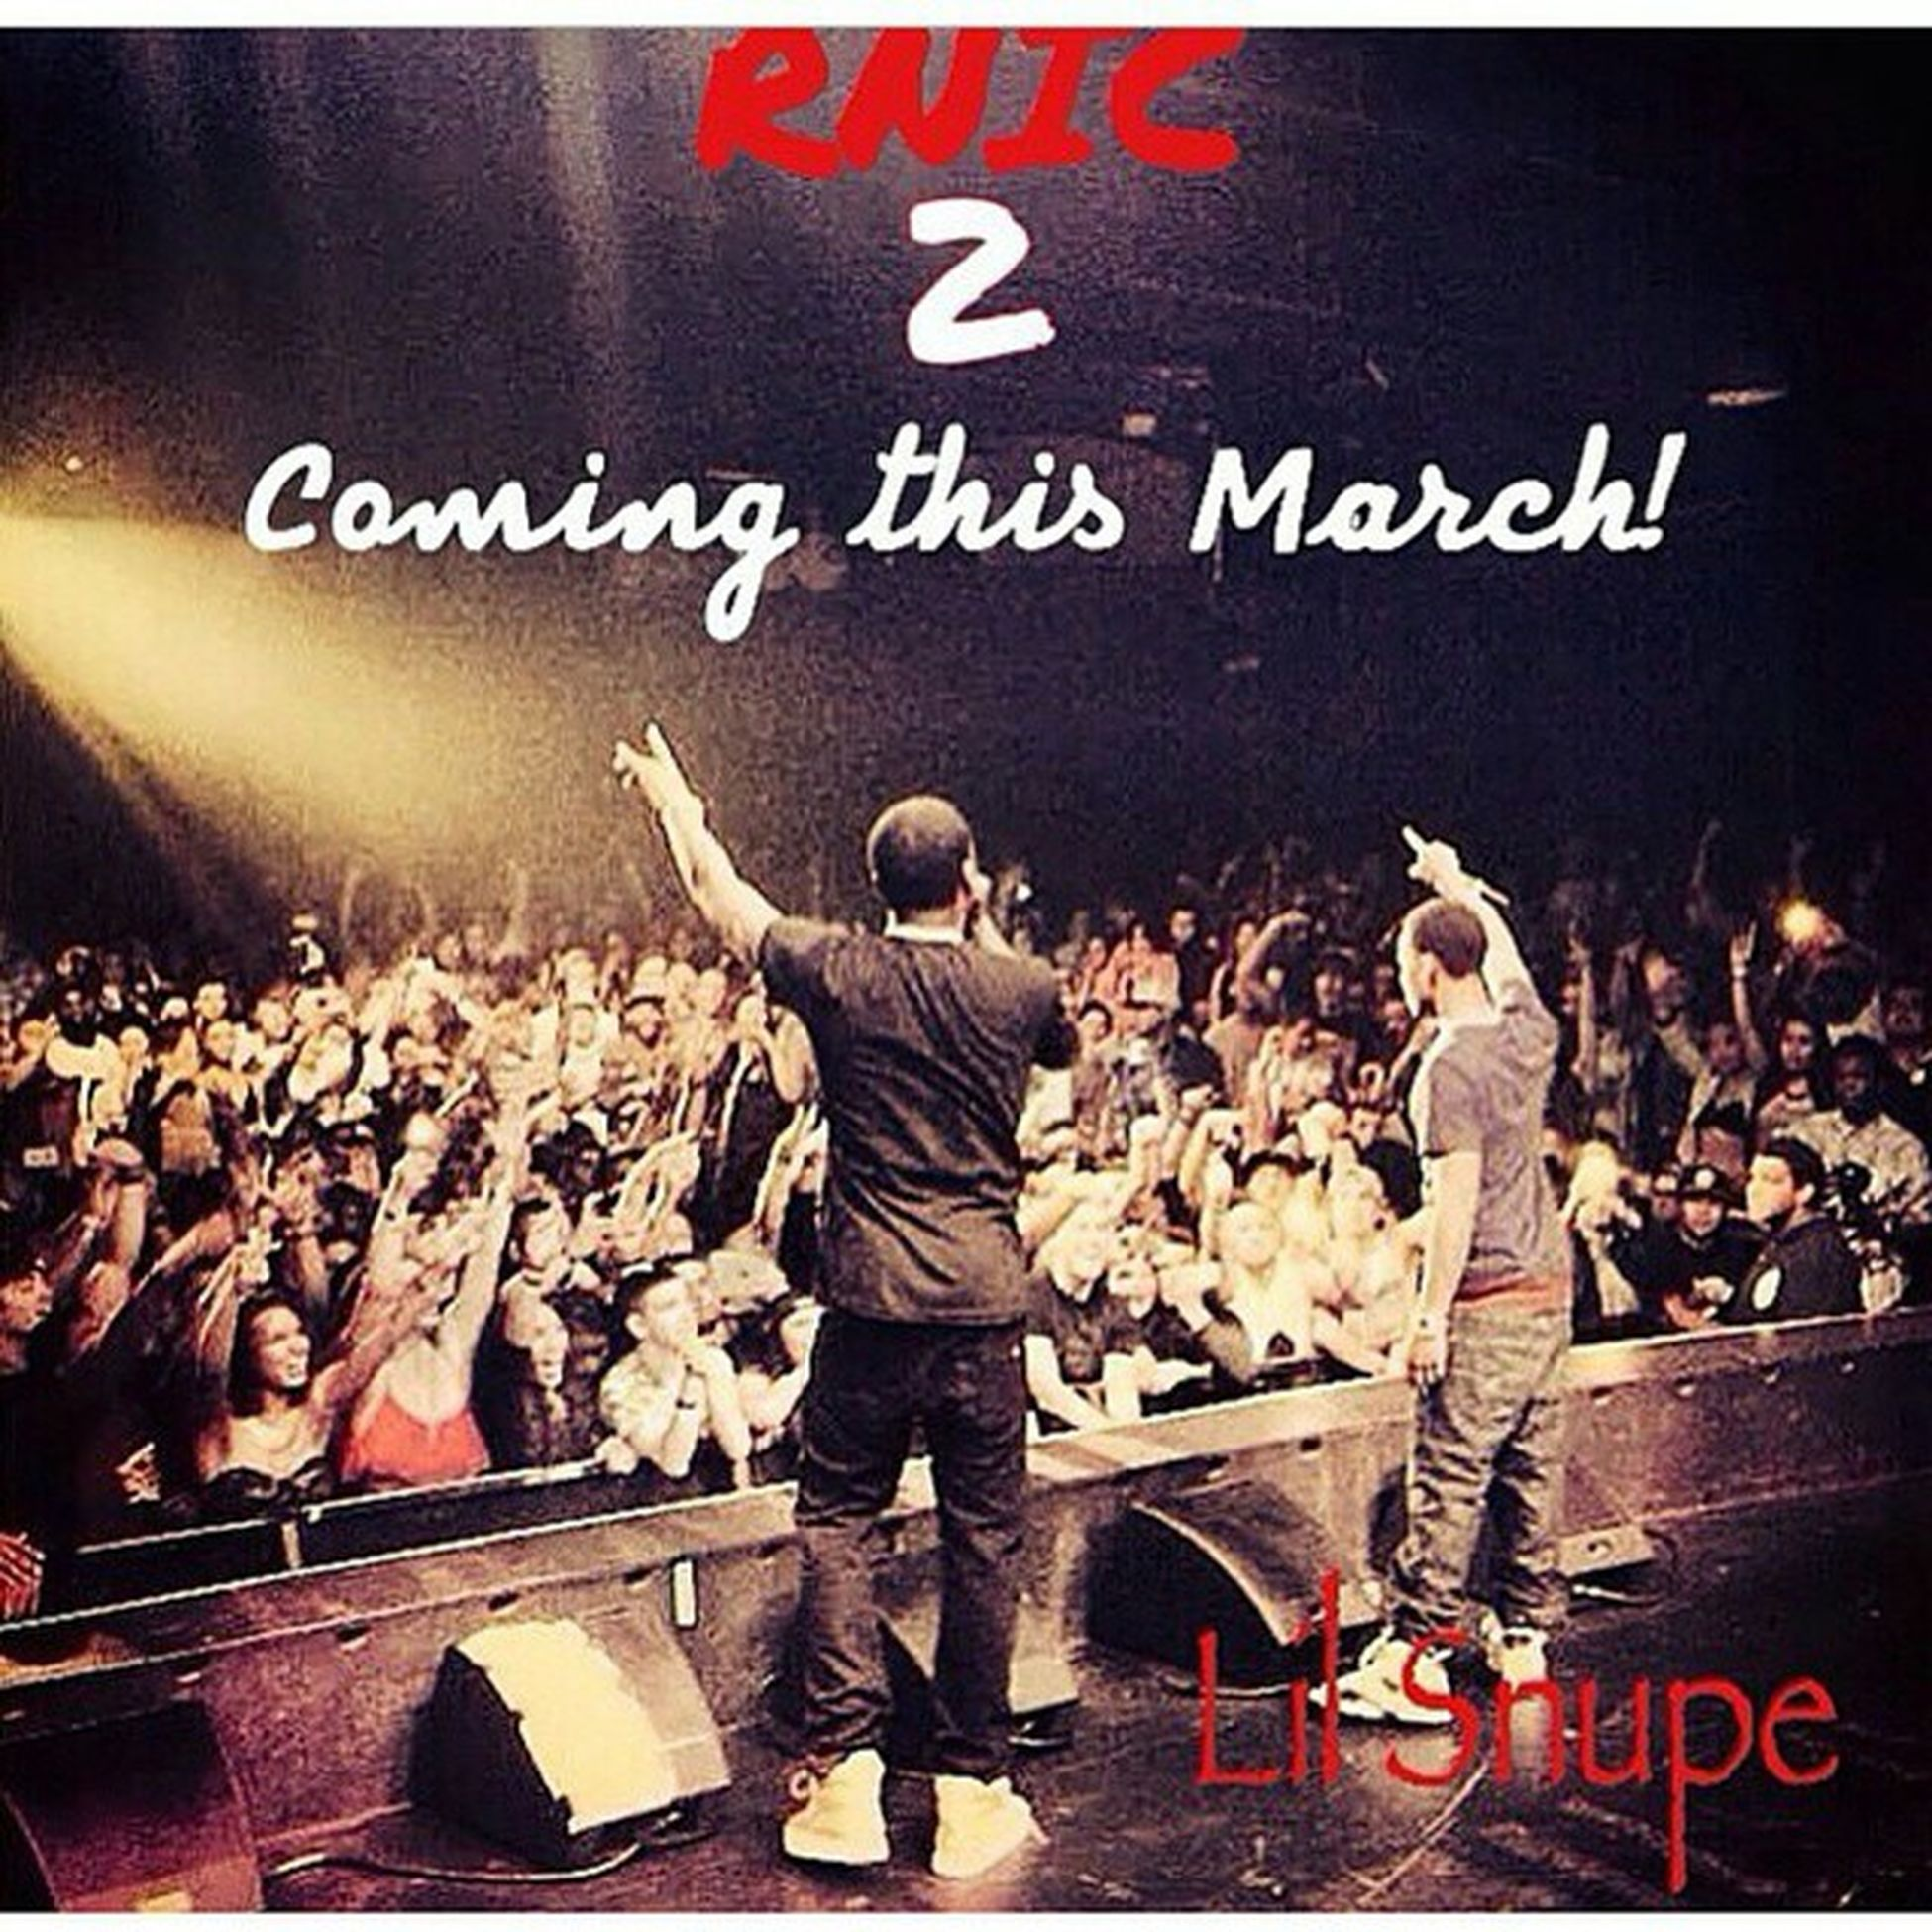 Lil Snupe's second project he was working on before his death, RNIC 2, drops in March 2015. Definitely gonna get that. RIP SNUPE Lilsnupe Jonesboro Zone4 Theboot